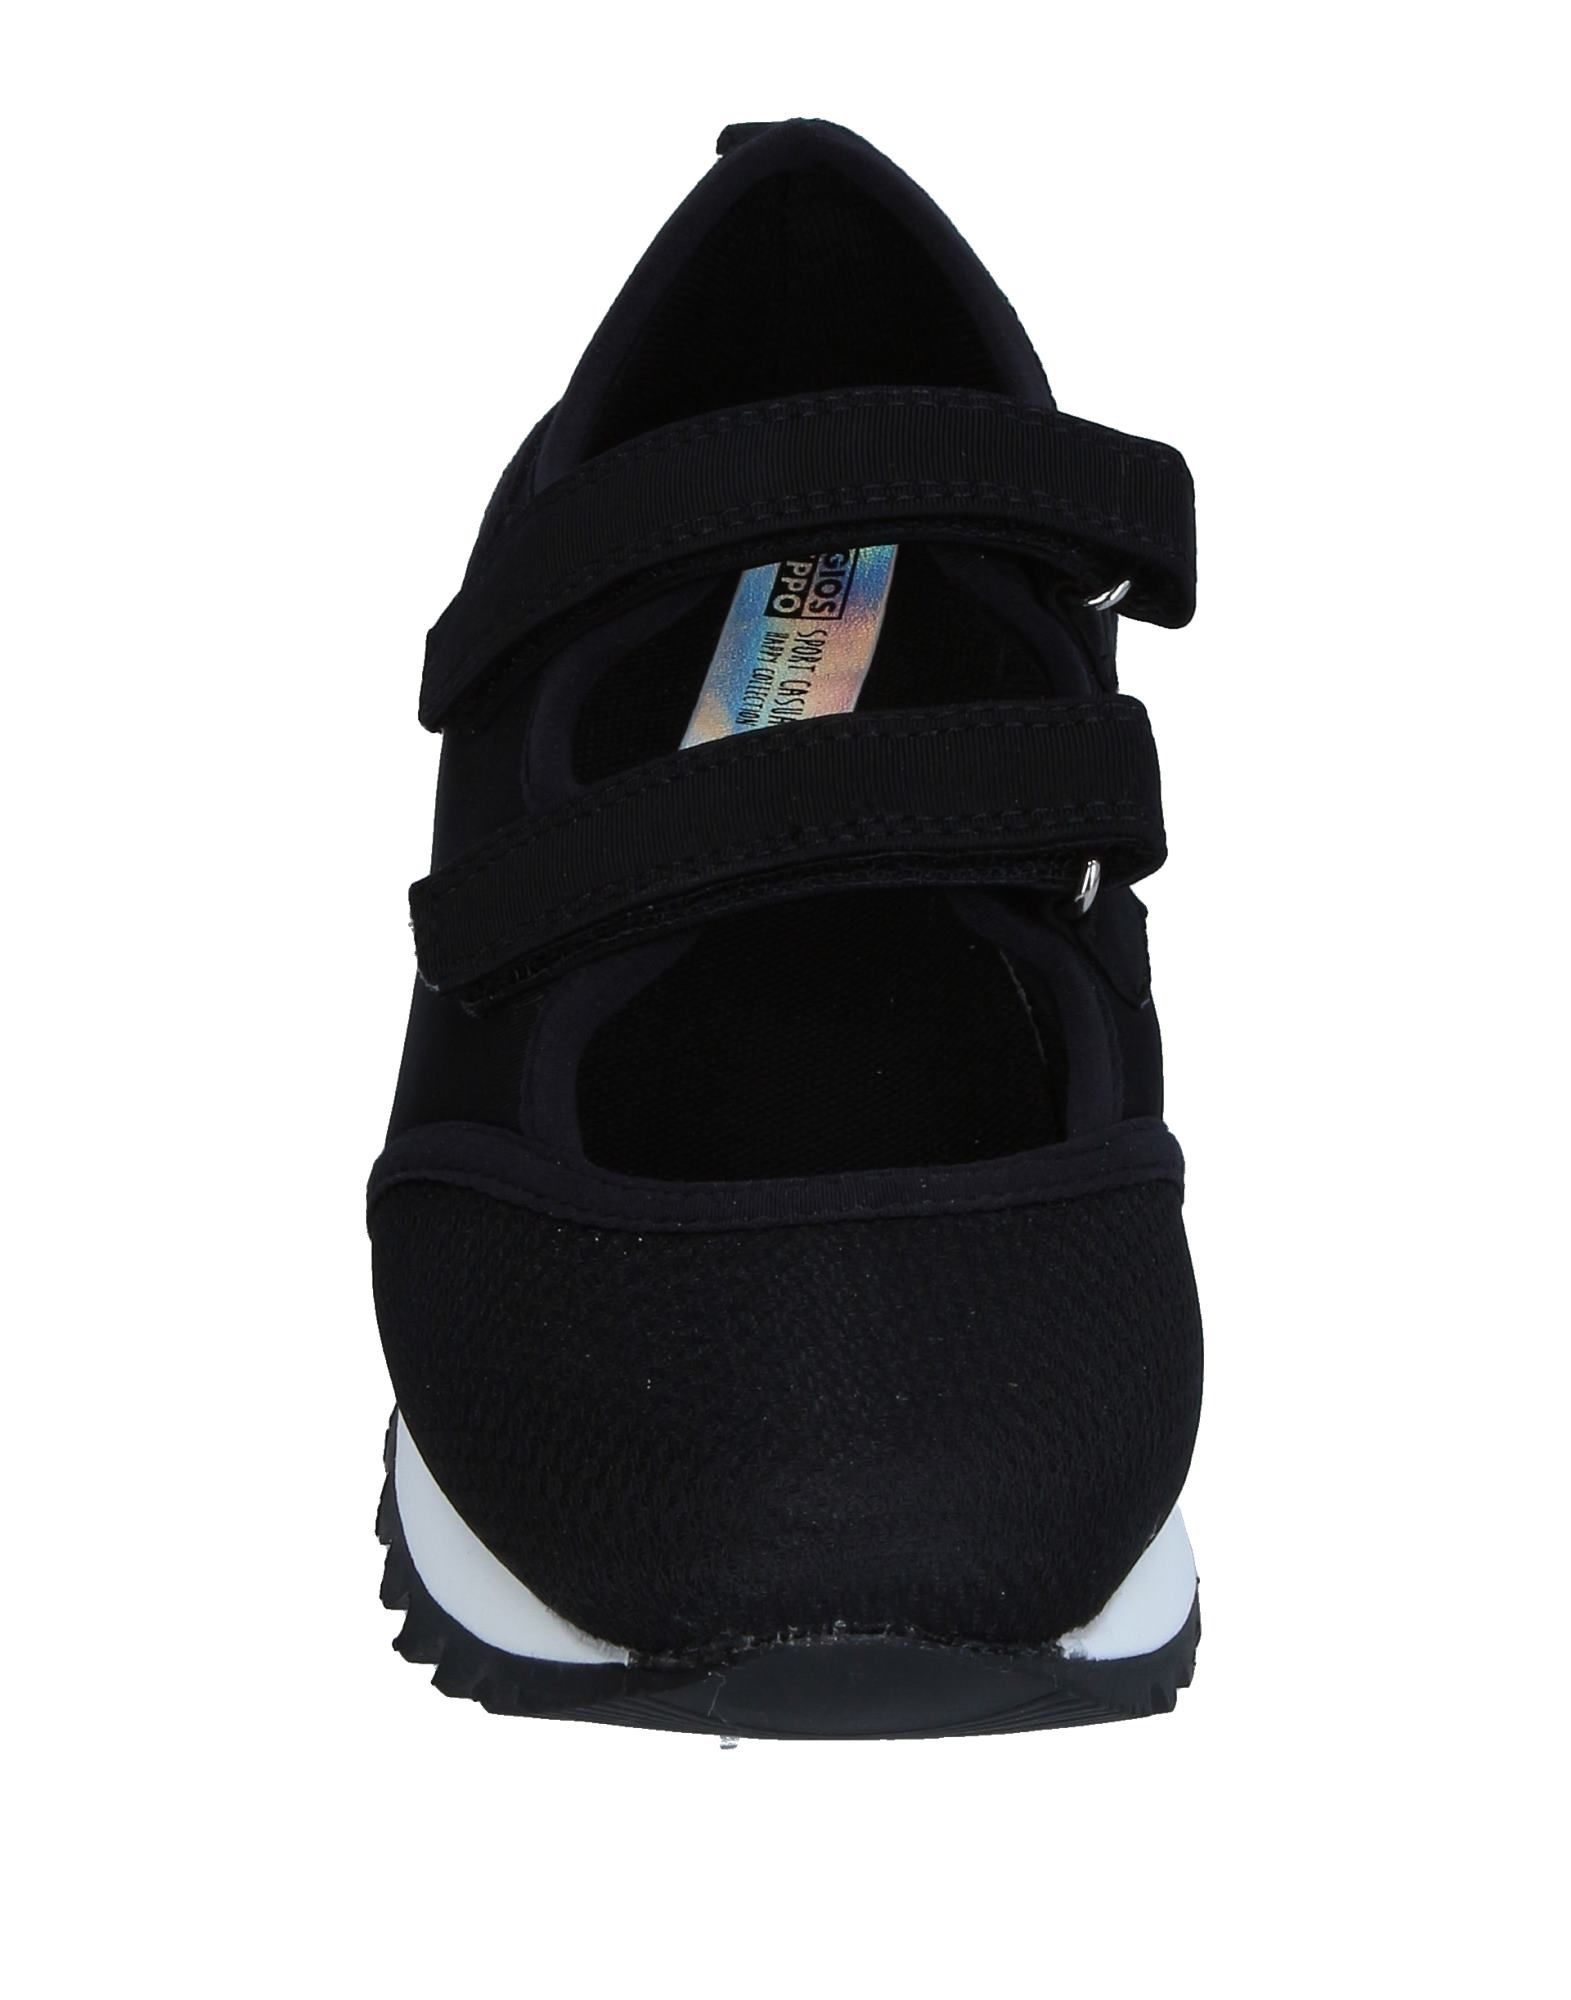 Sneakers Gioseppo Femme - Sneakers Gioseppo sur